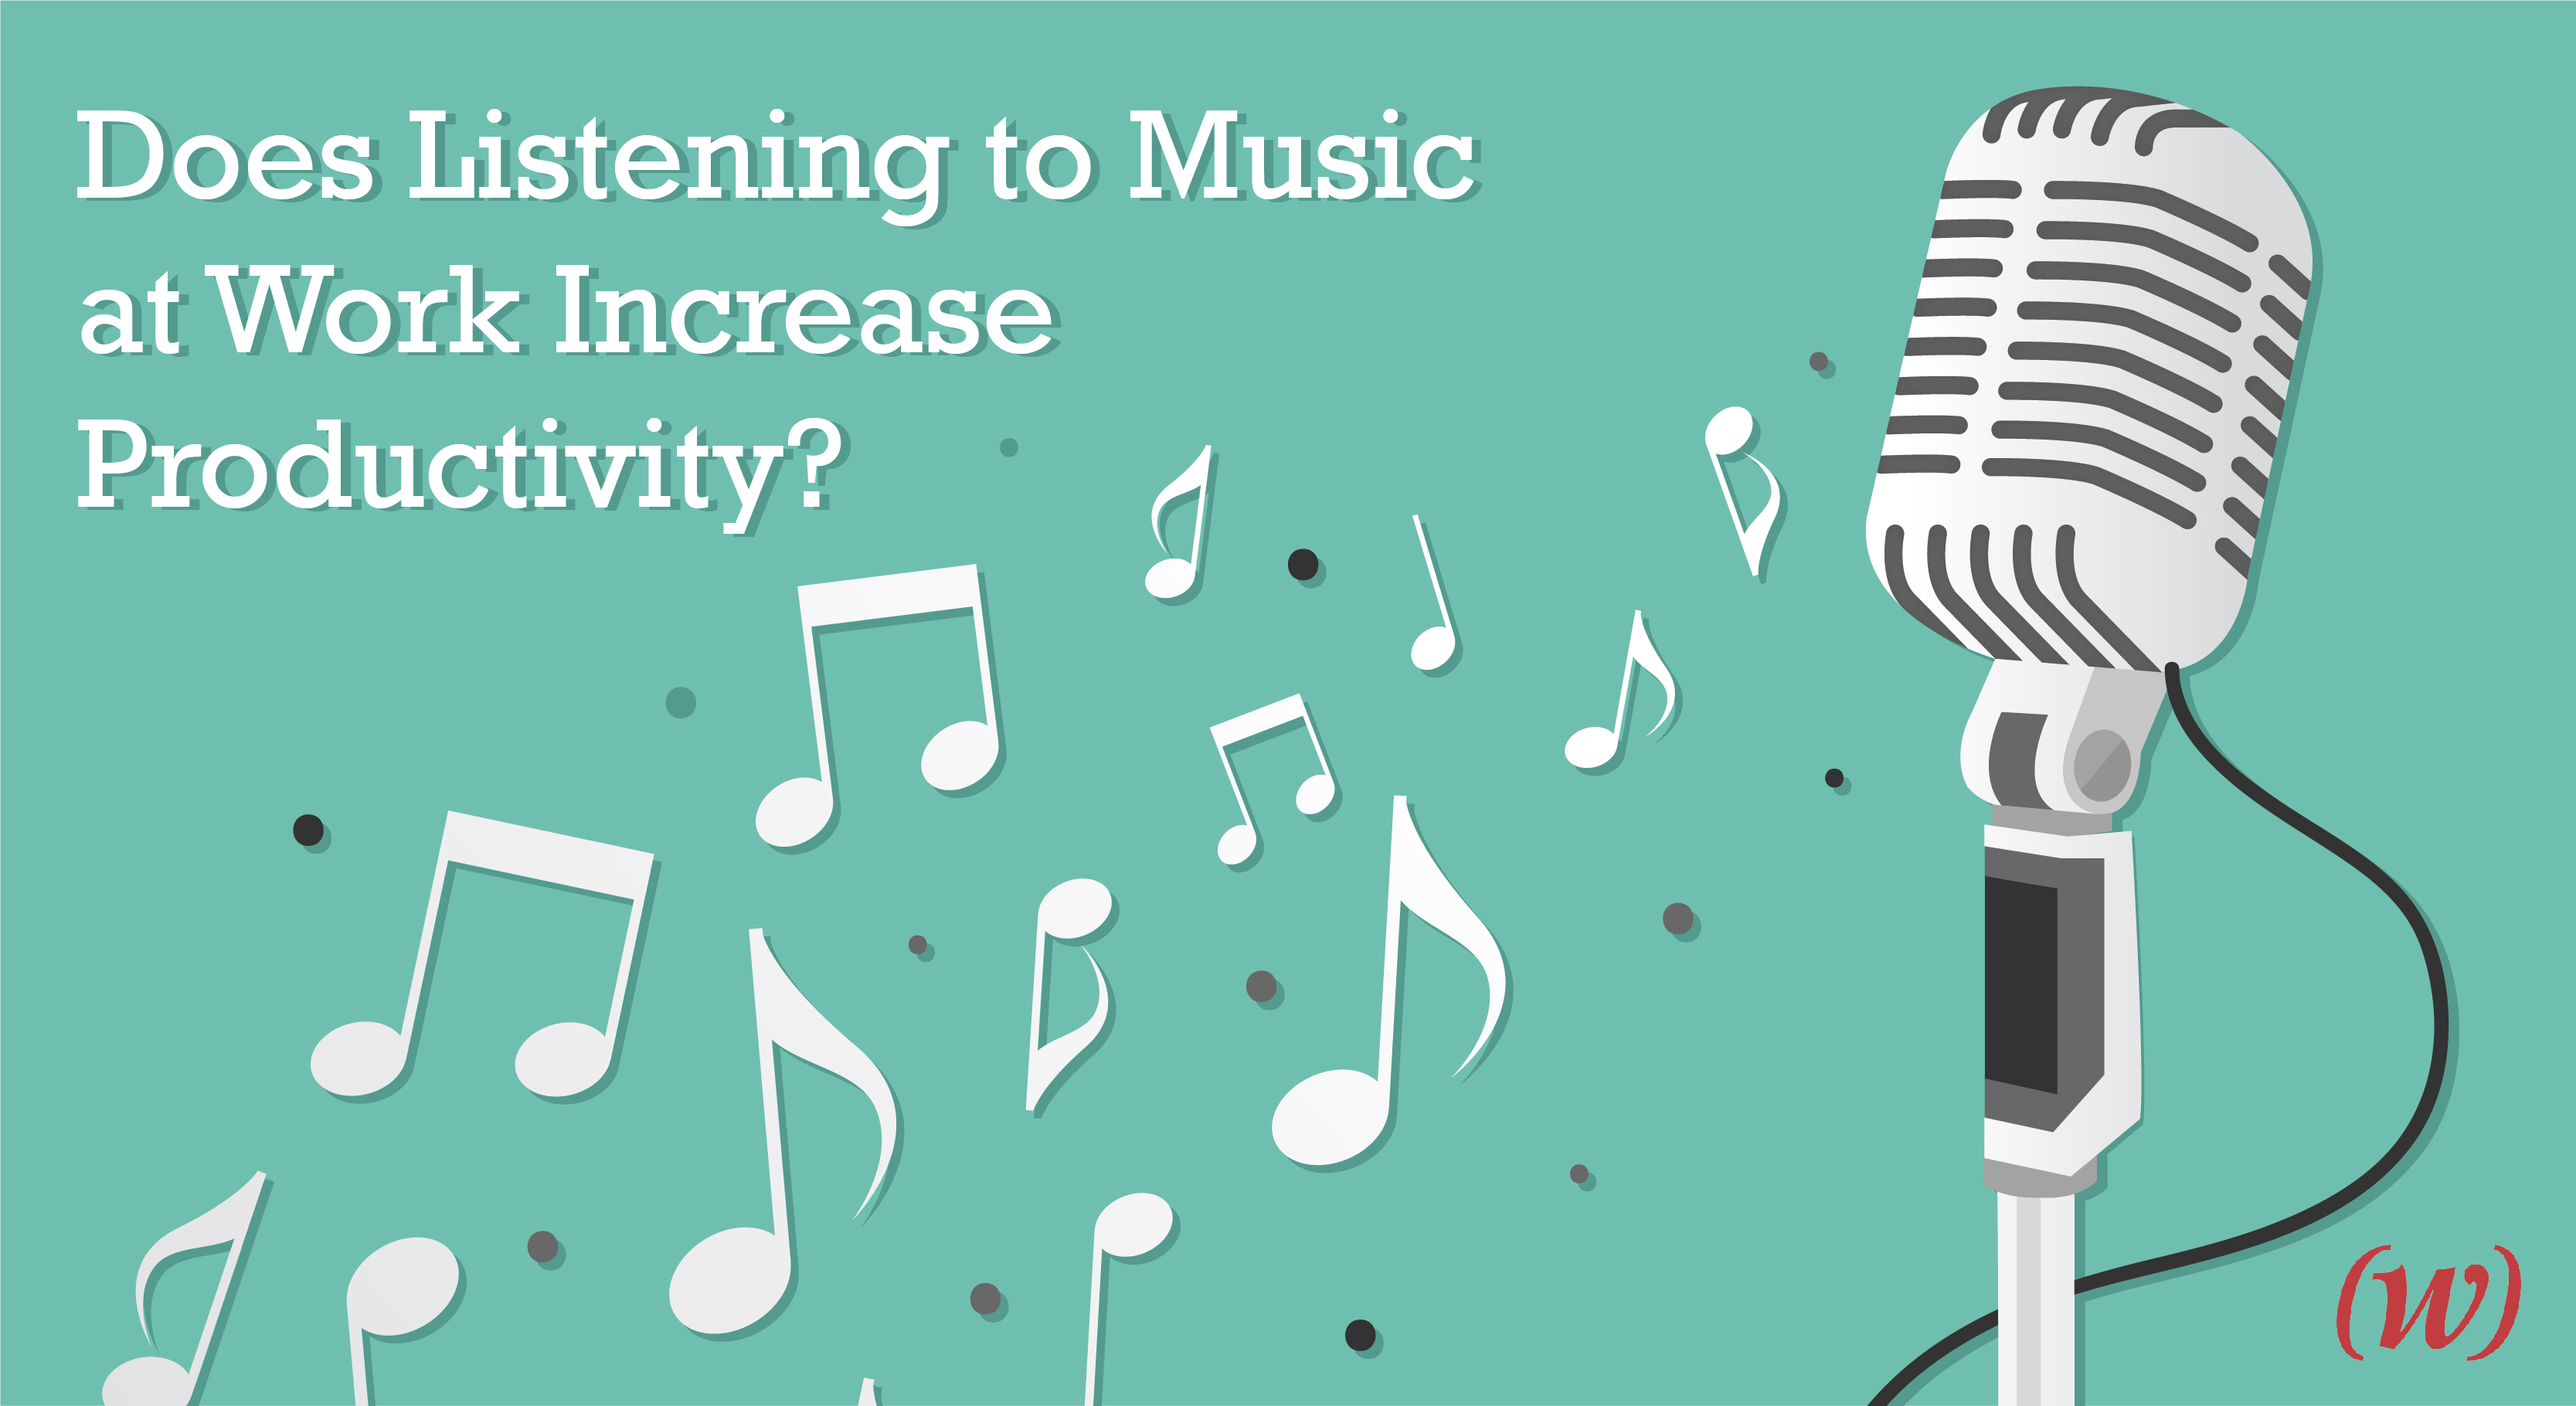 Does Listening to Music at Work Increase Productivity?